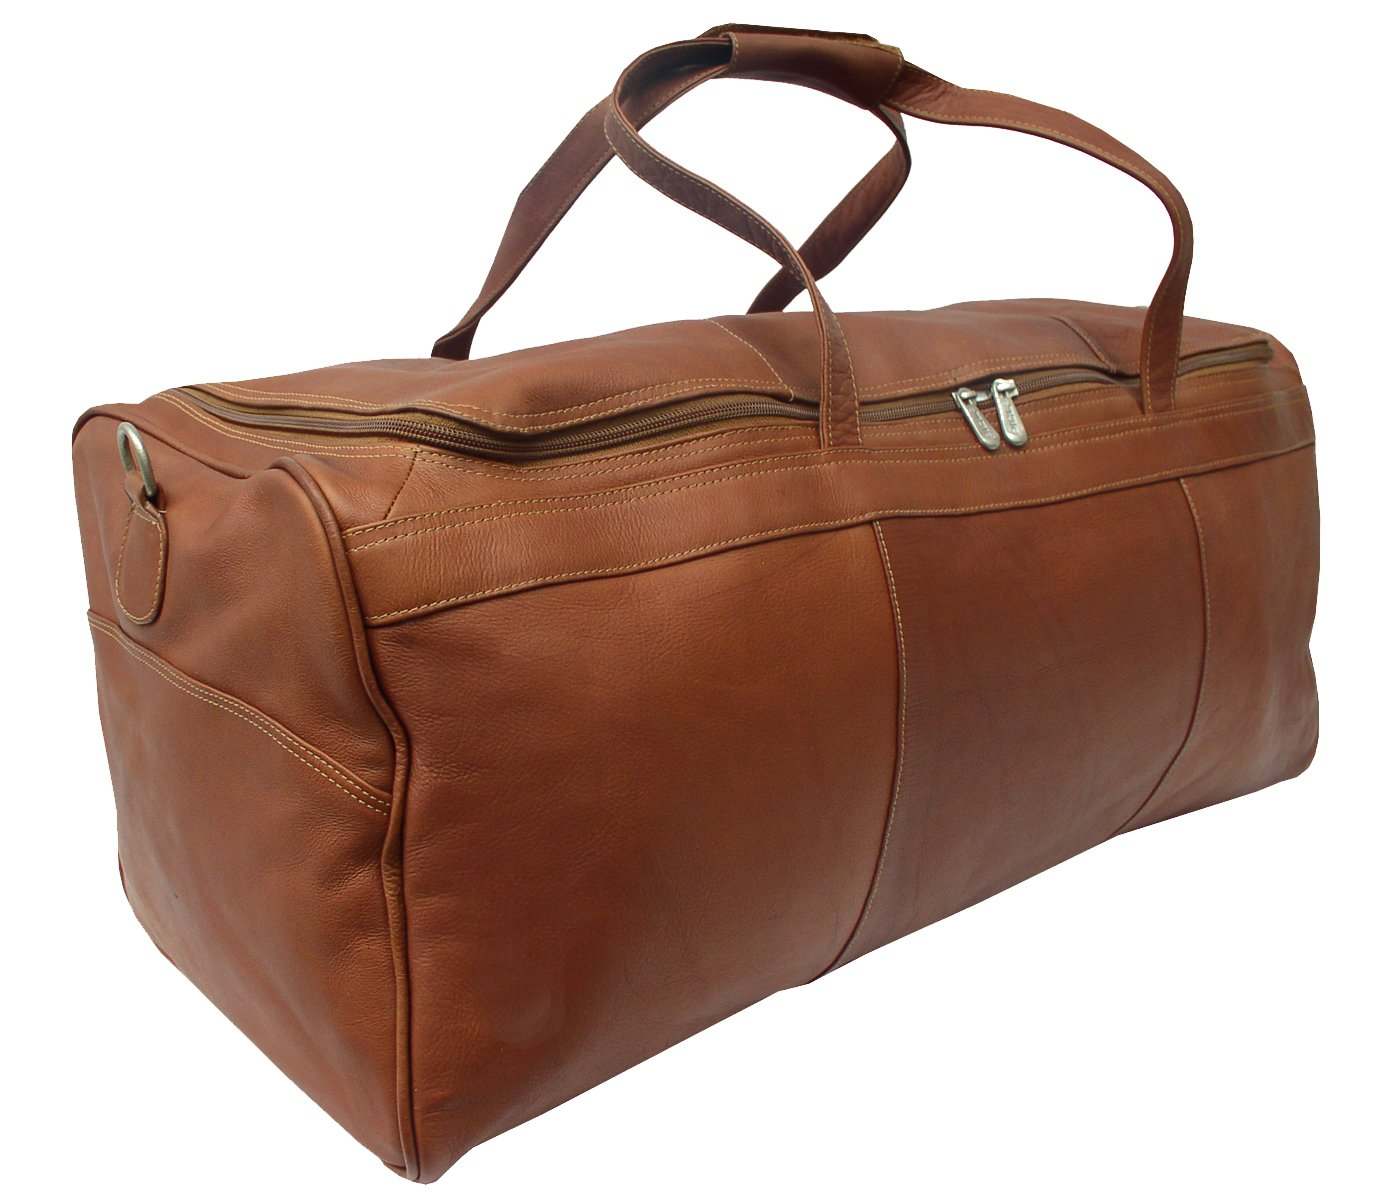 Piel Leather Traveler's Select Large Duffel Bag in Saddle